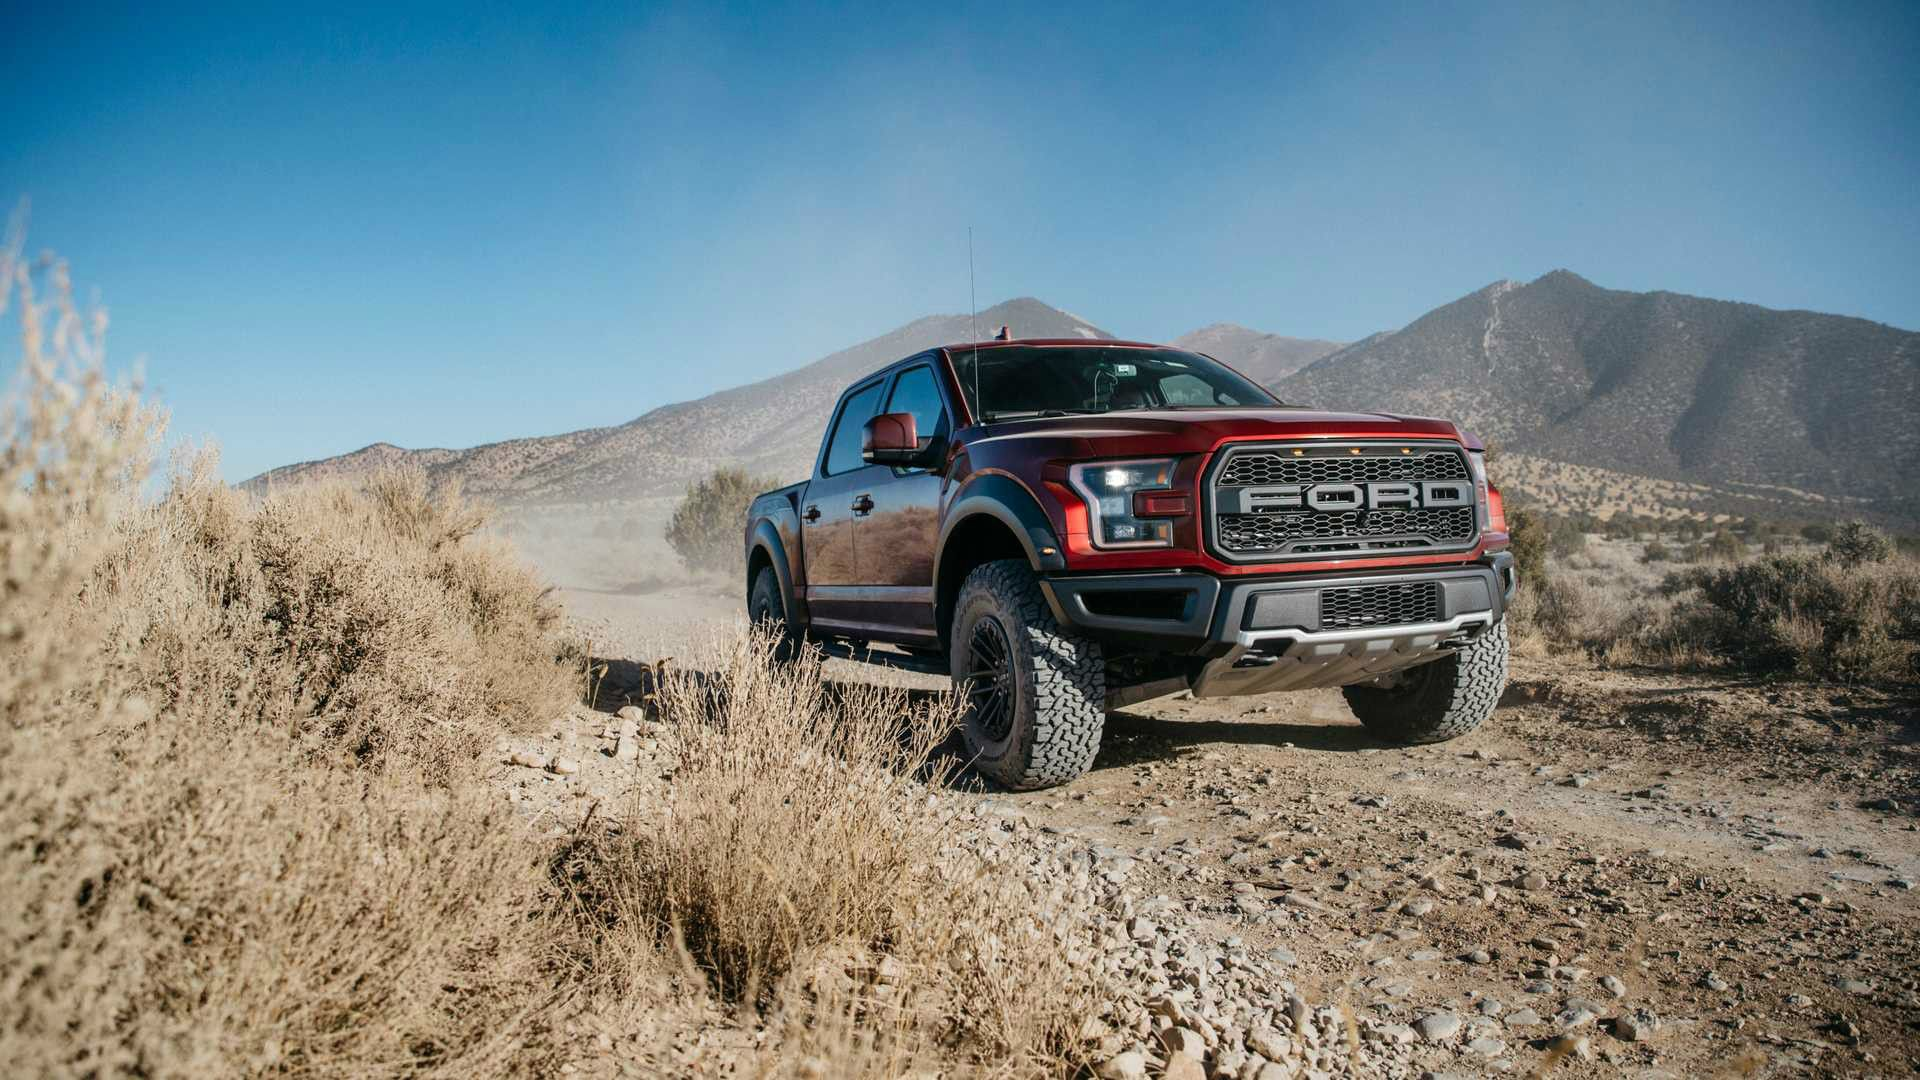 Ford F150 wallpaper 1080p